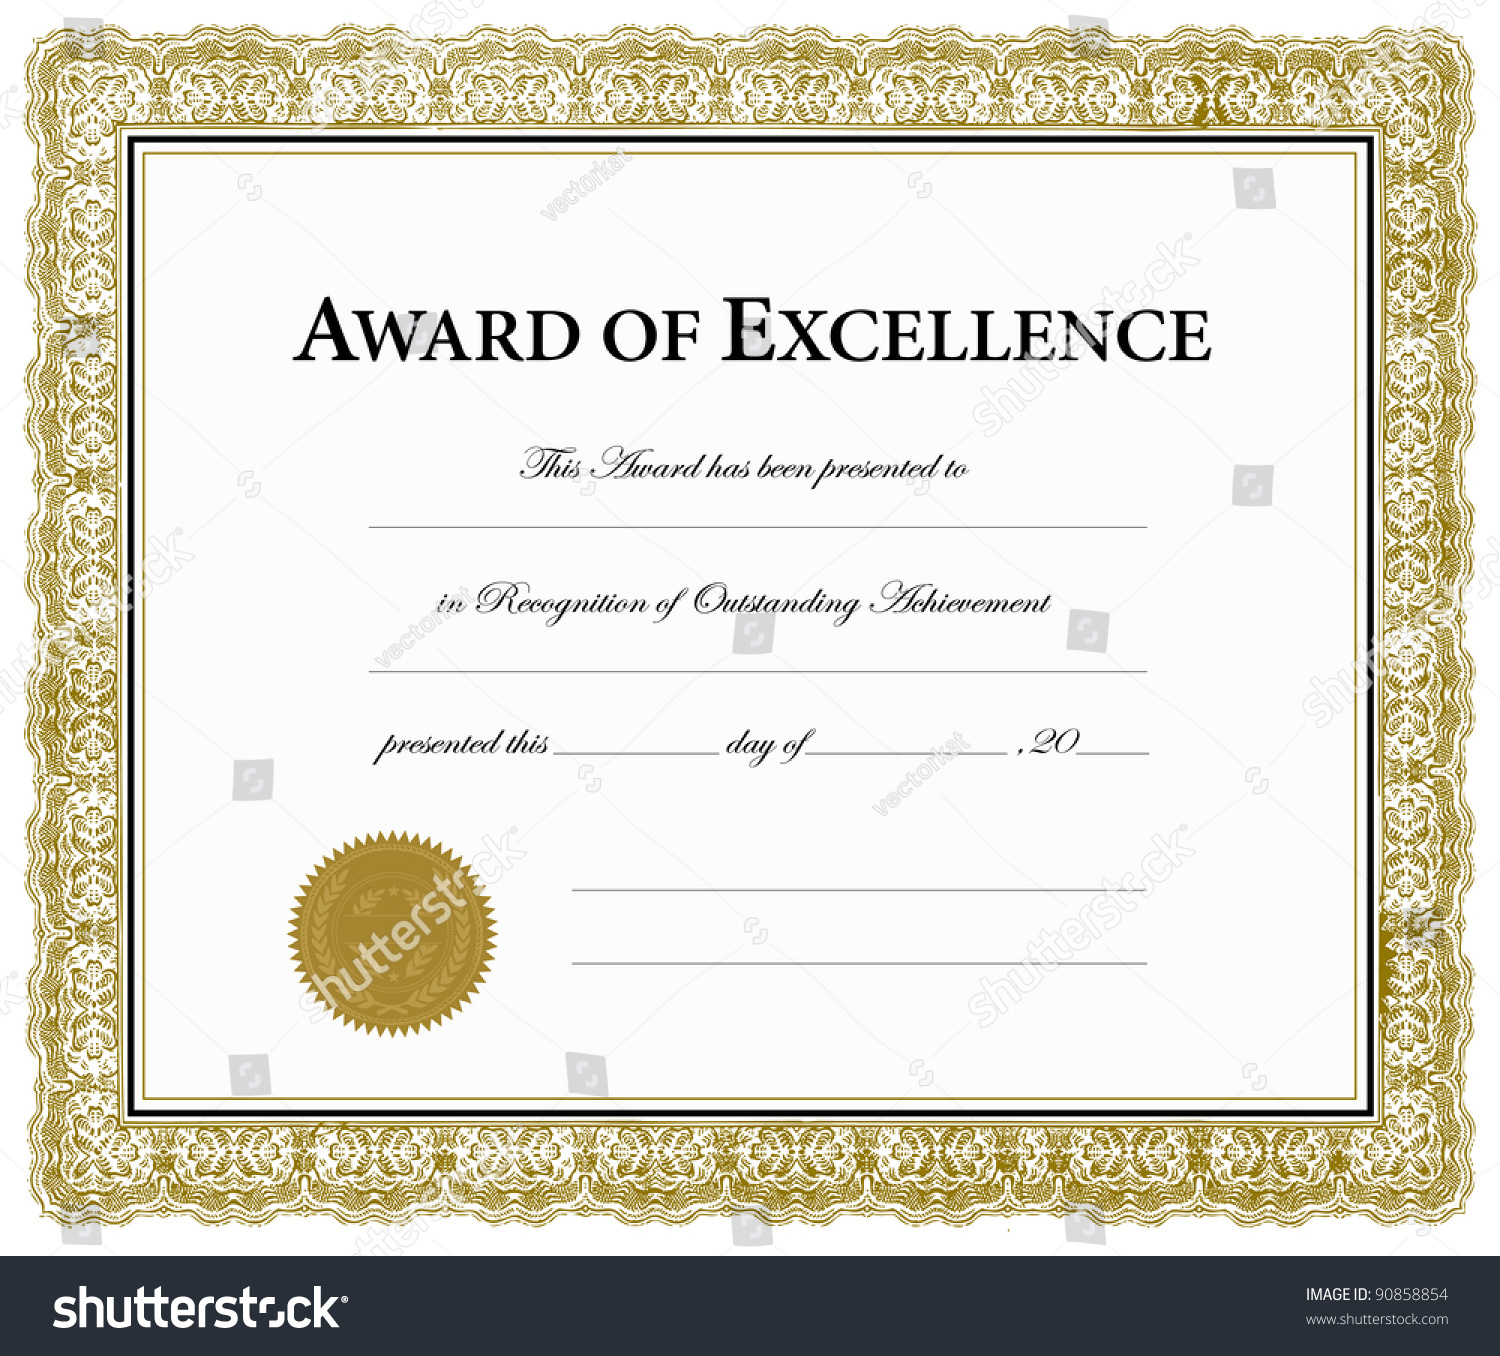 certificate of excellence template editable - vector award excellence certificate pieces separate stock